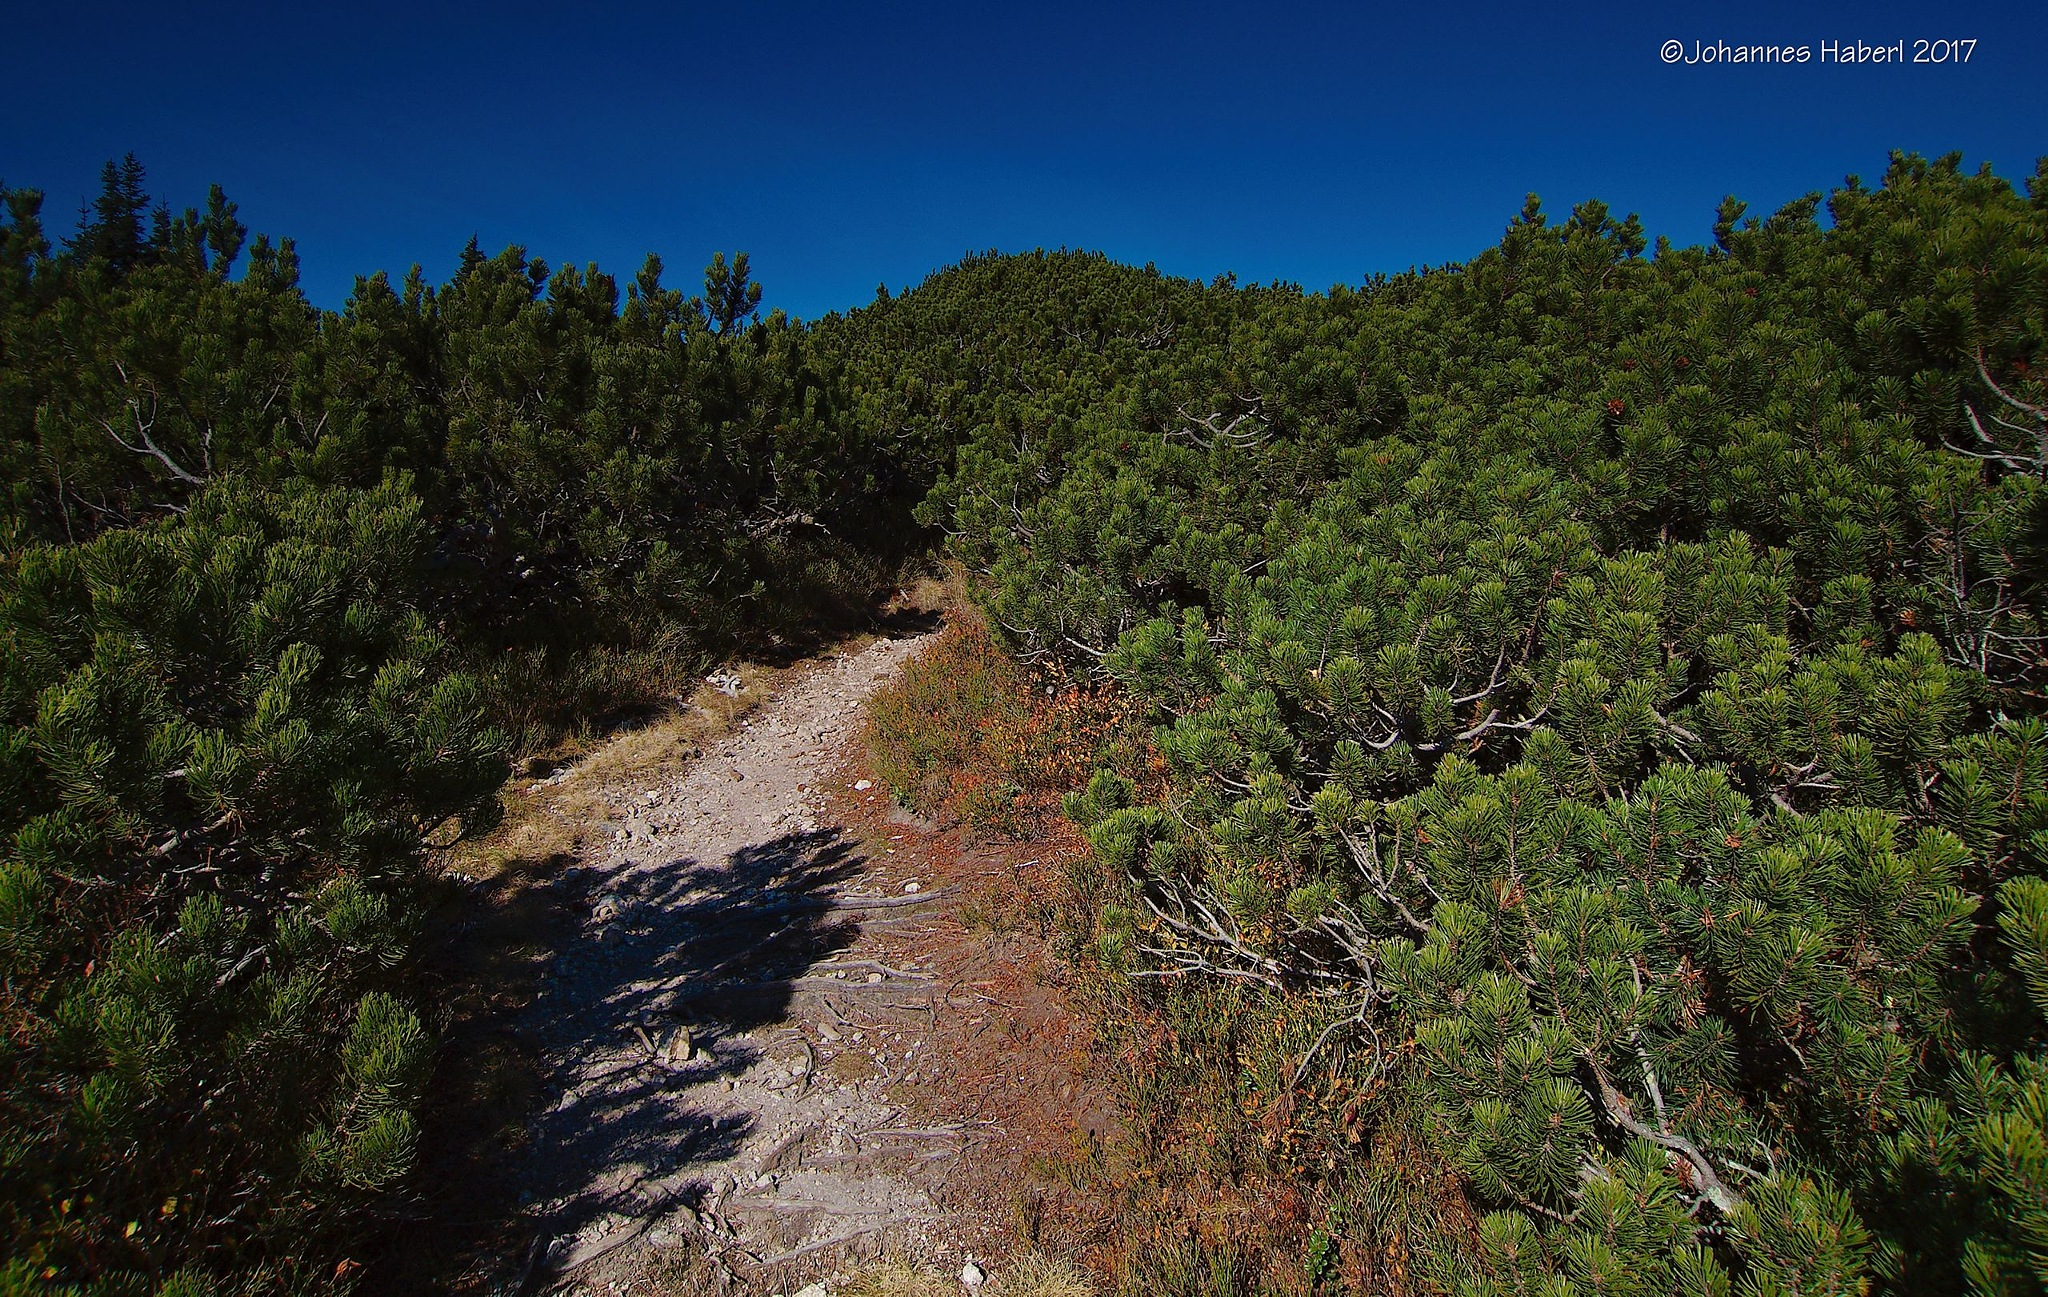 path trough mountain-pine forest by Johannes Haberl